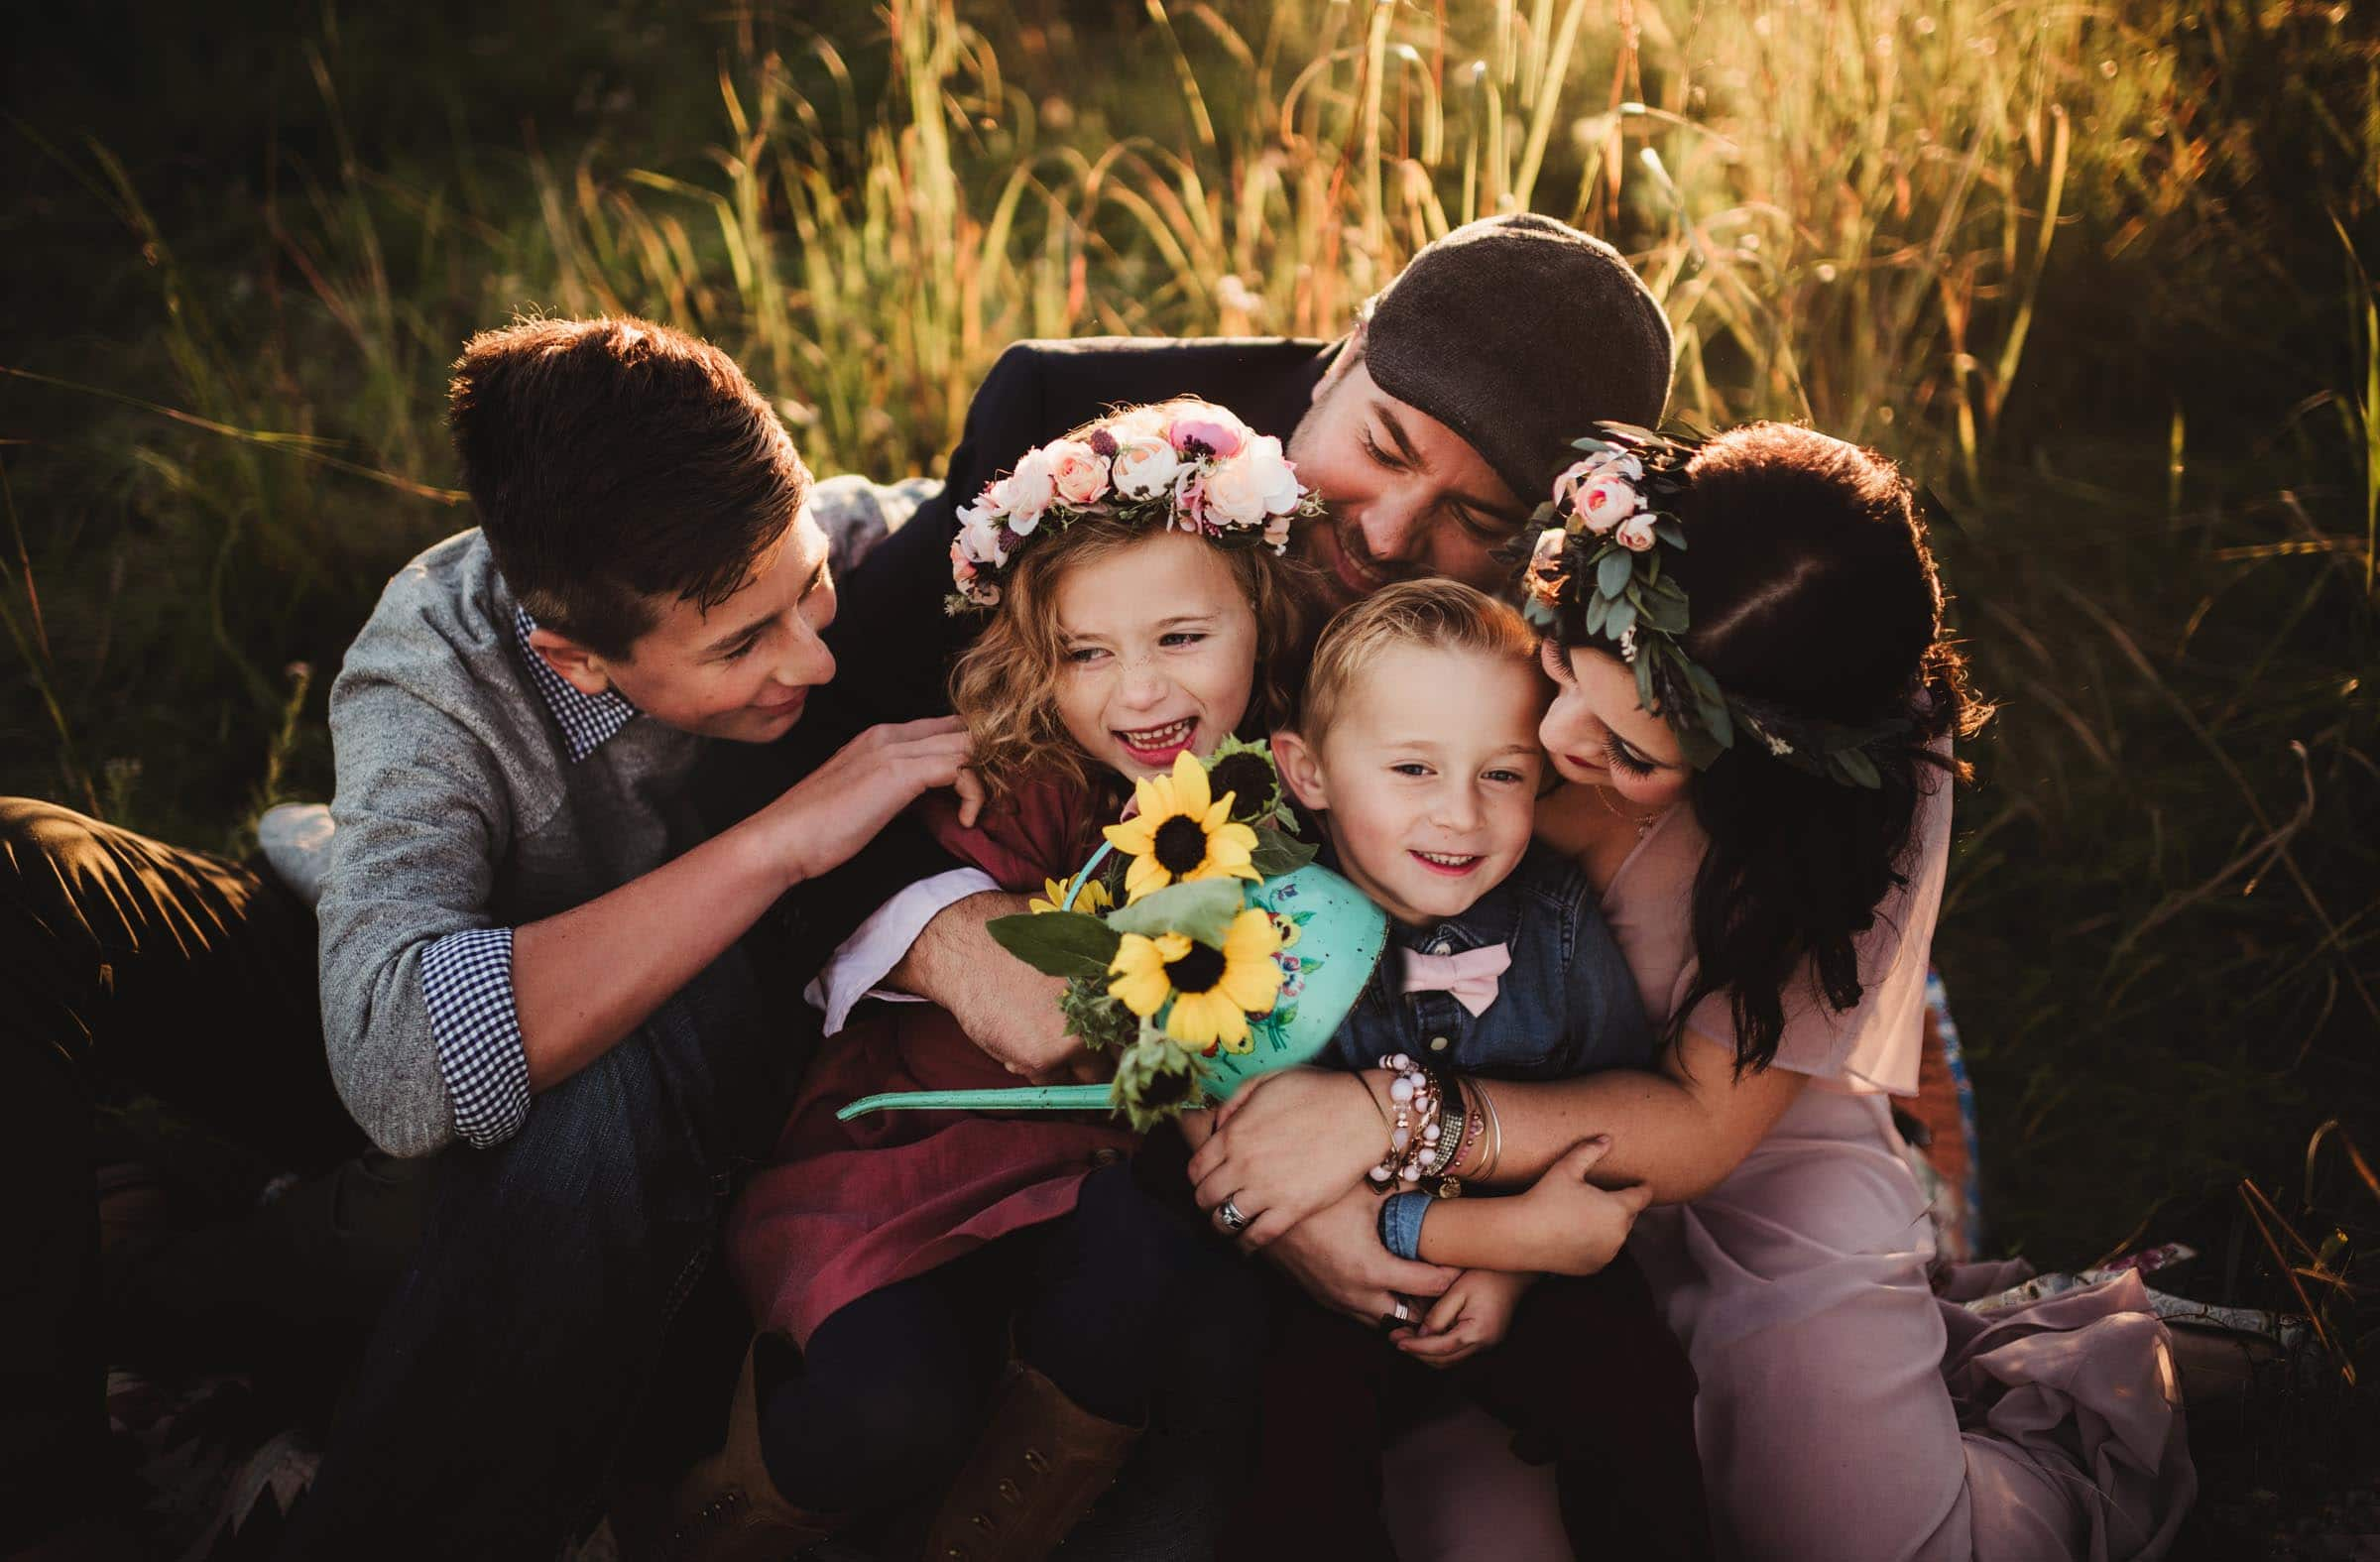 Family Snuggling Holding Sunflowers